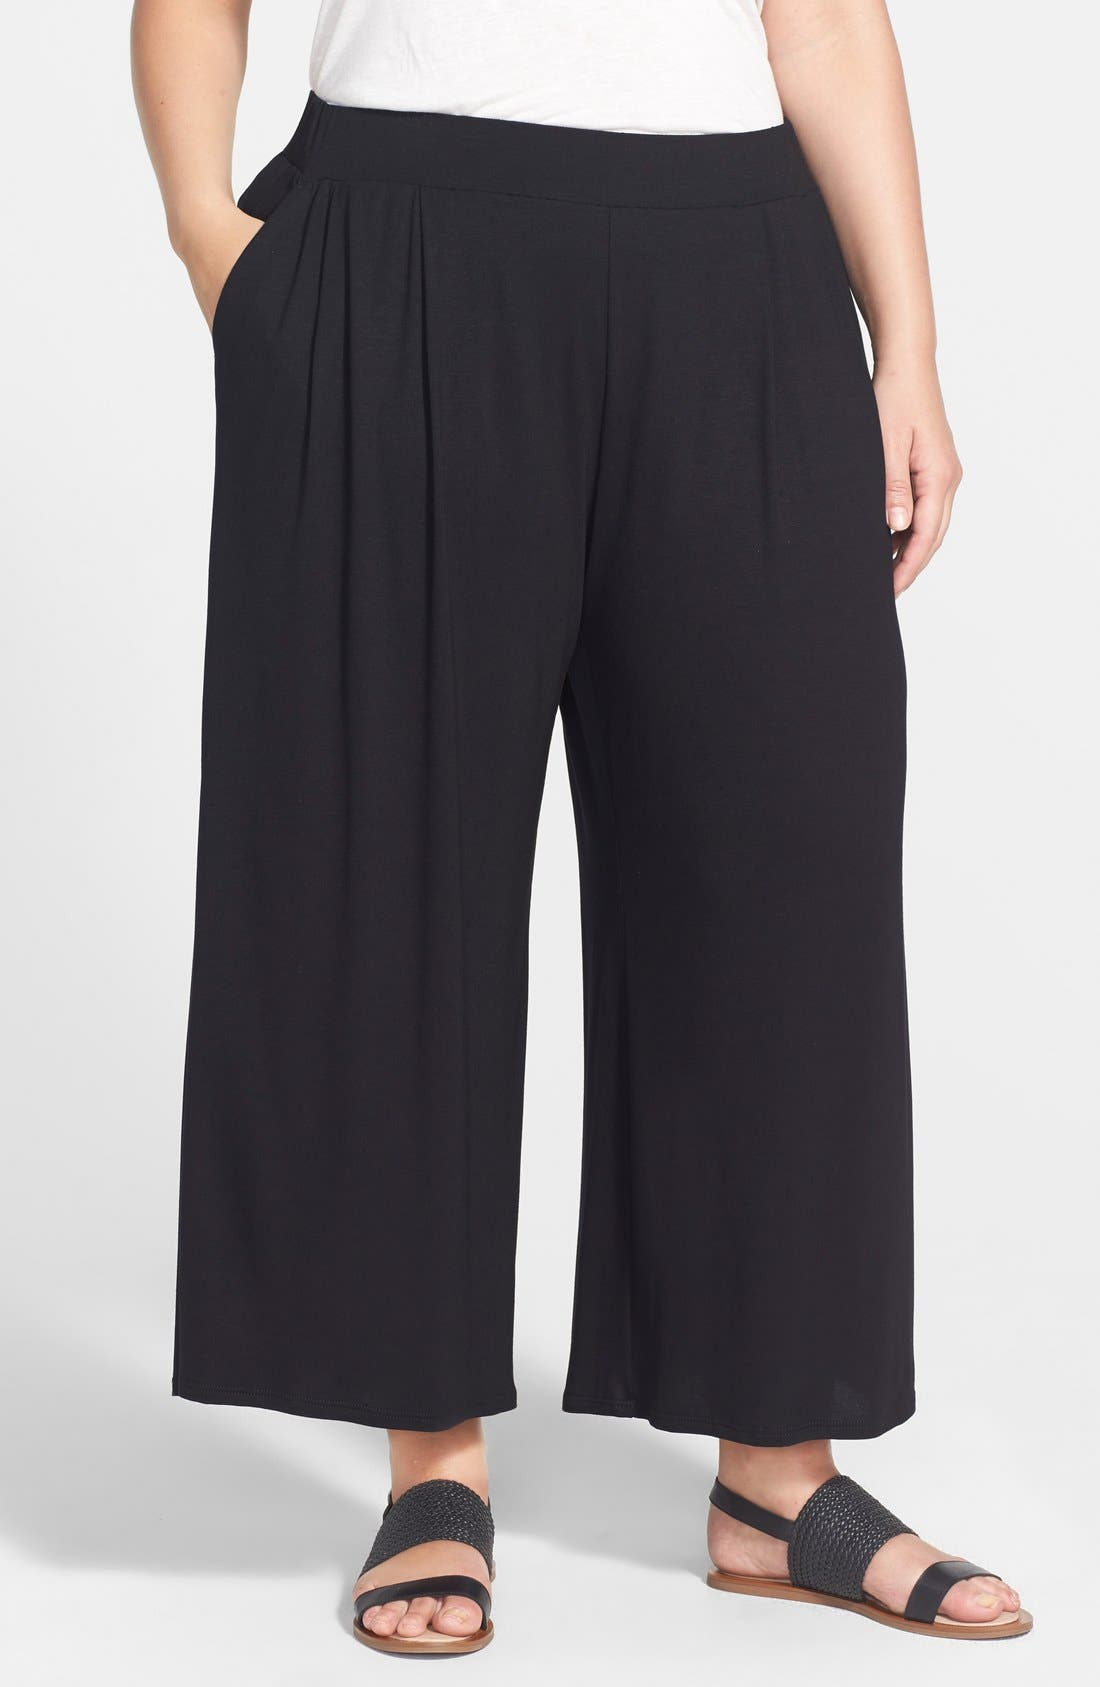 Alternate Image 1 Selected - Eileen Fisher Wide Leg Jersey Pants (Plus Size)